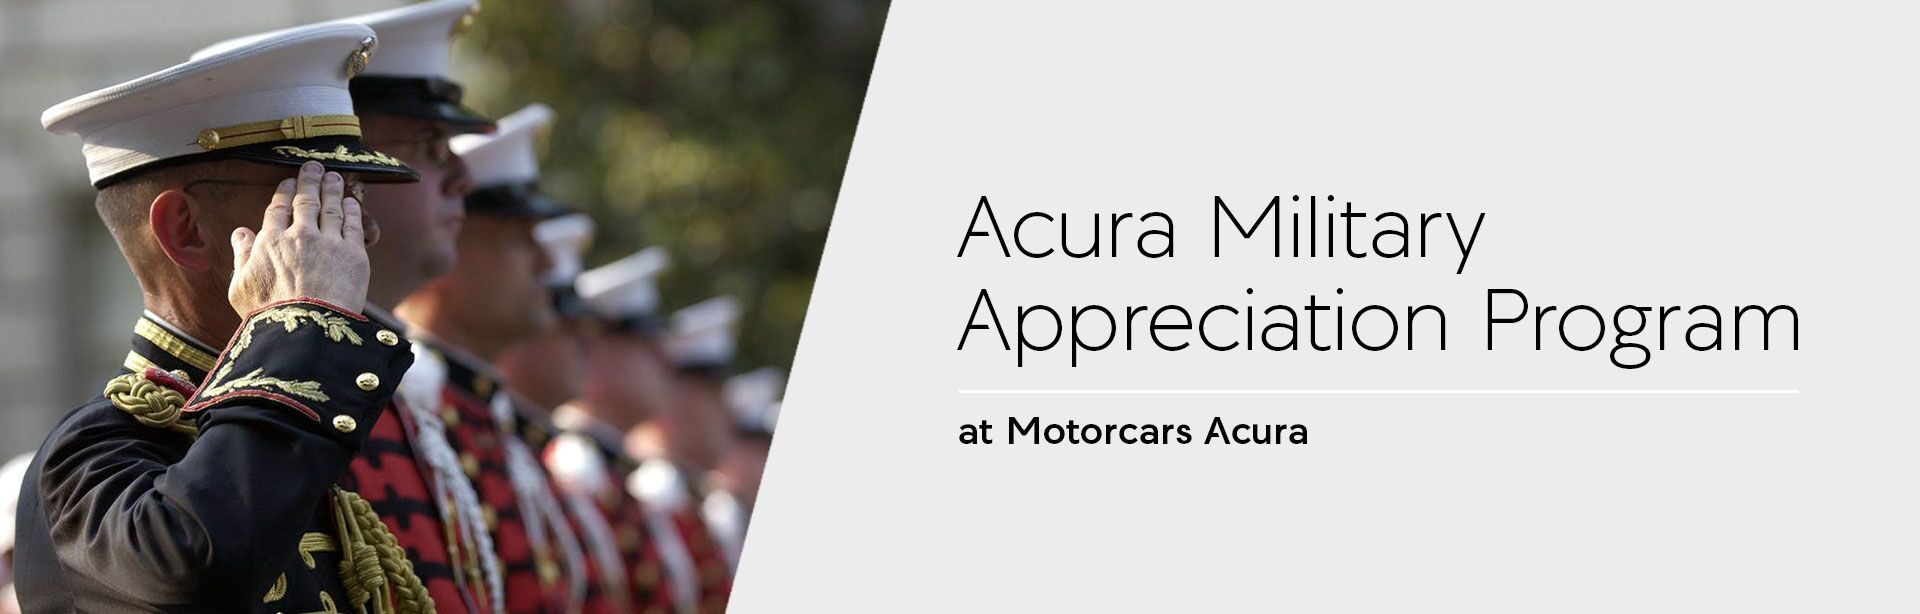 Acura Military Appreciation Program